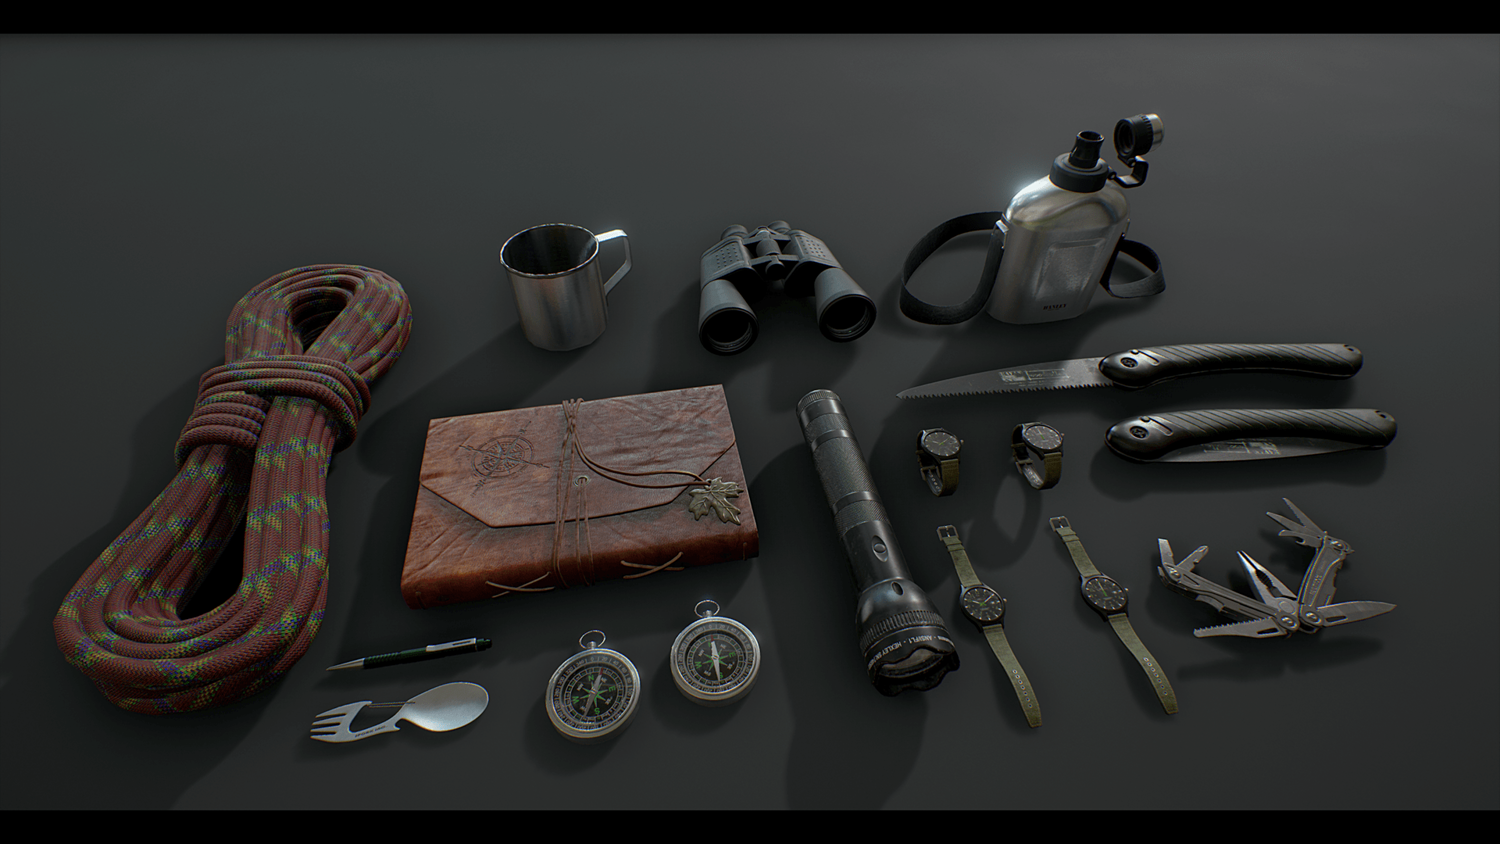 Explorers Survival Kit and Tools